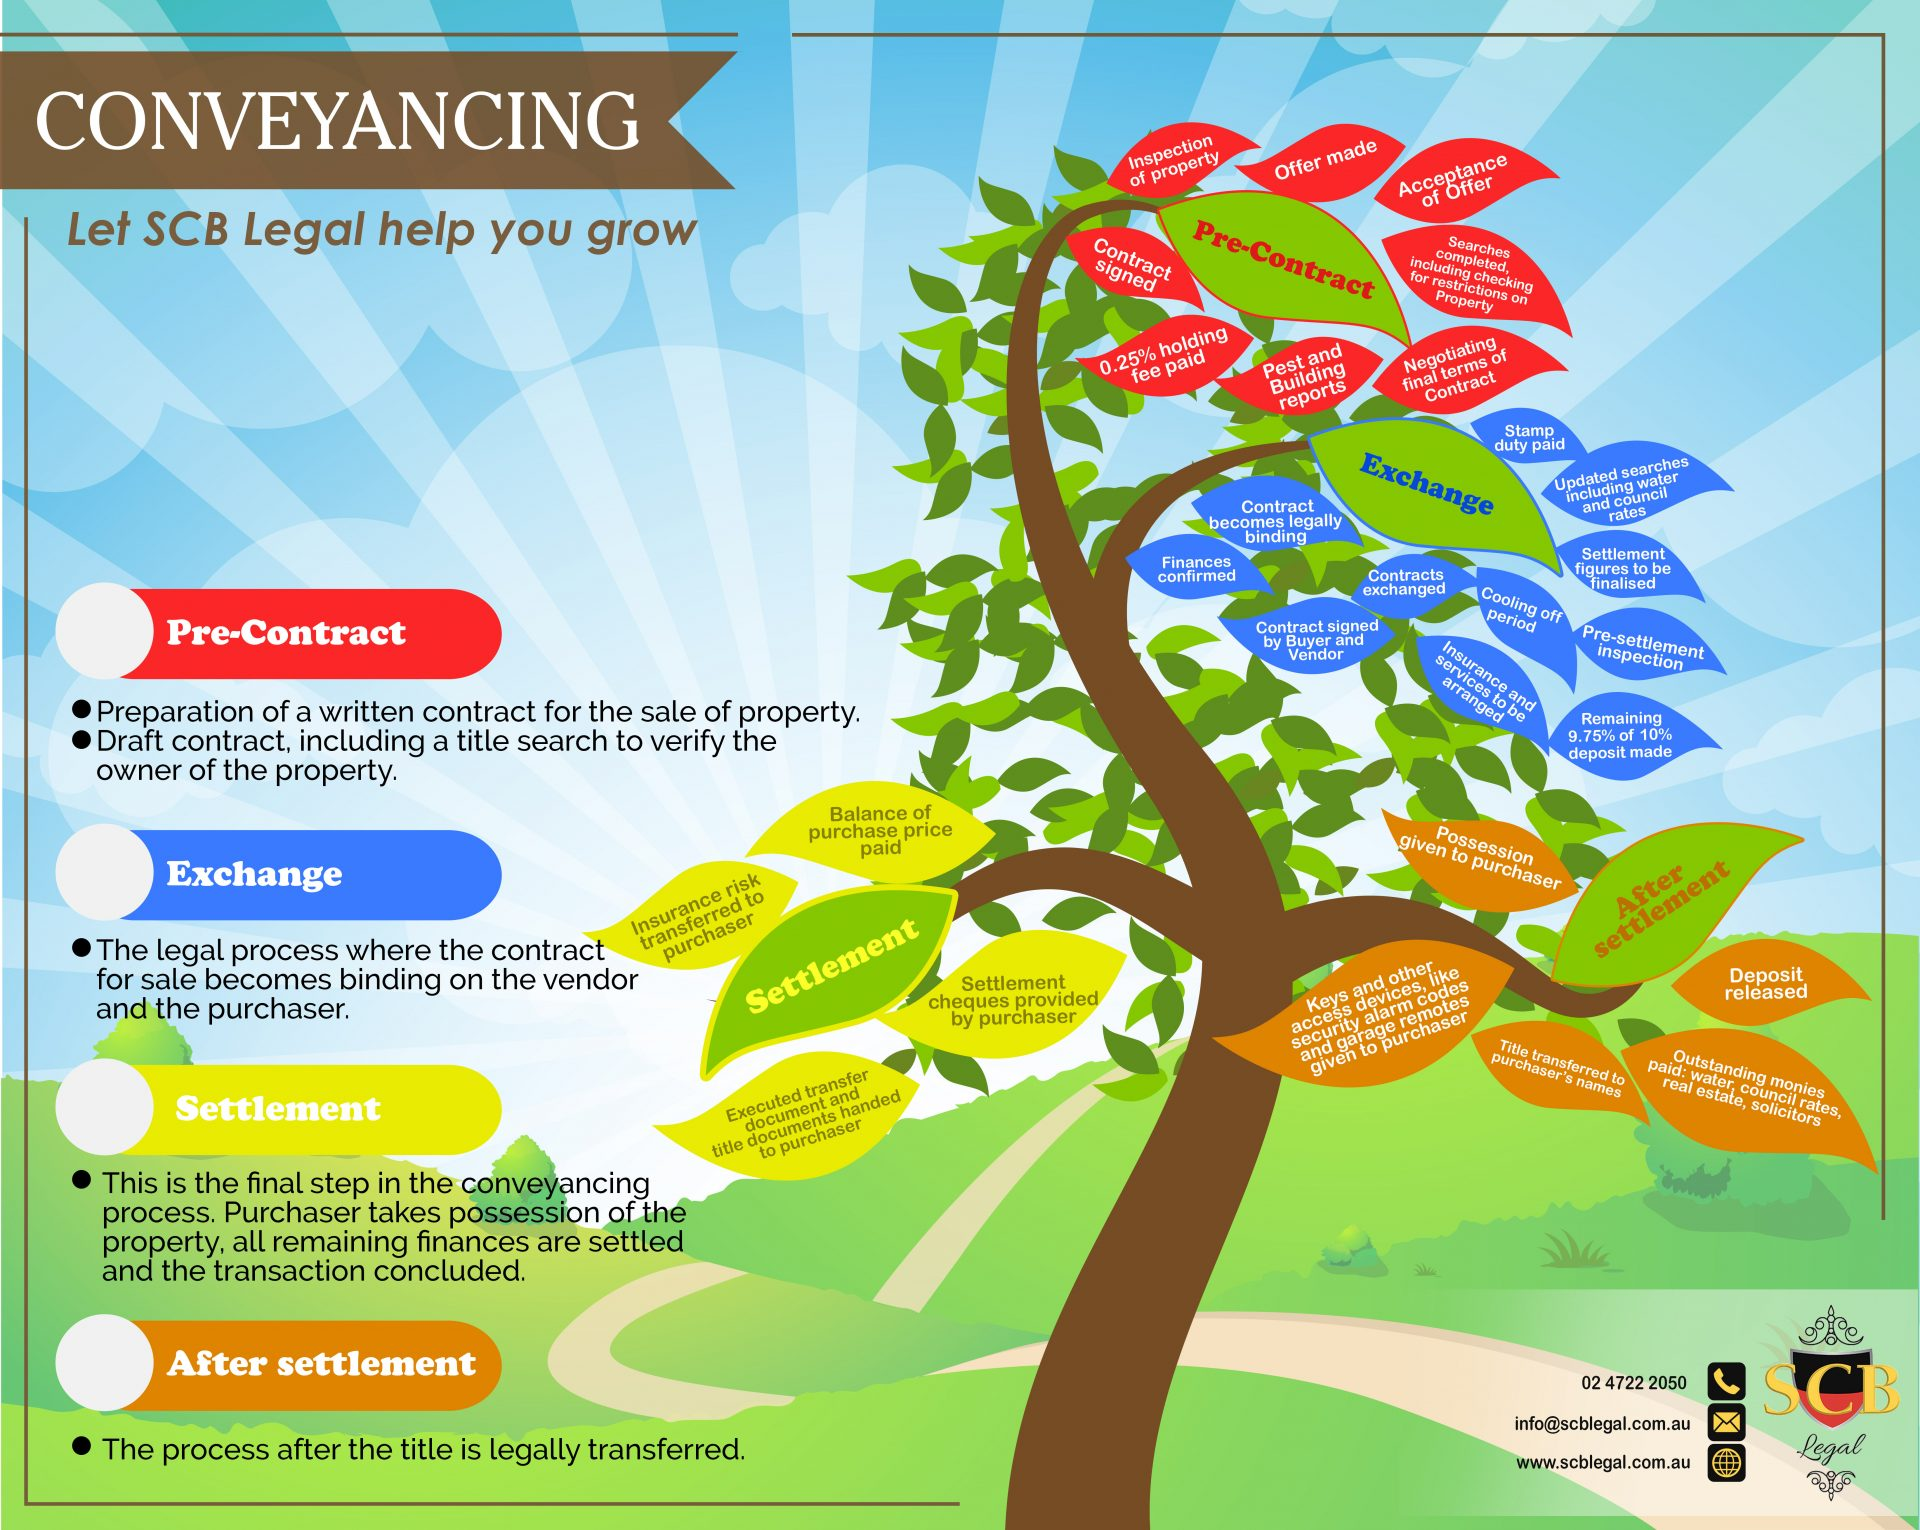 Conveyancing lawyers' infographic about the conveyancing process